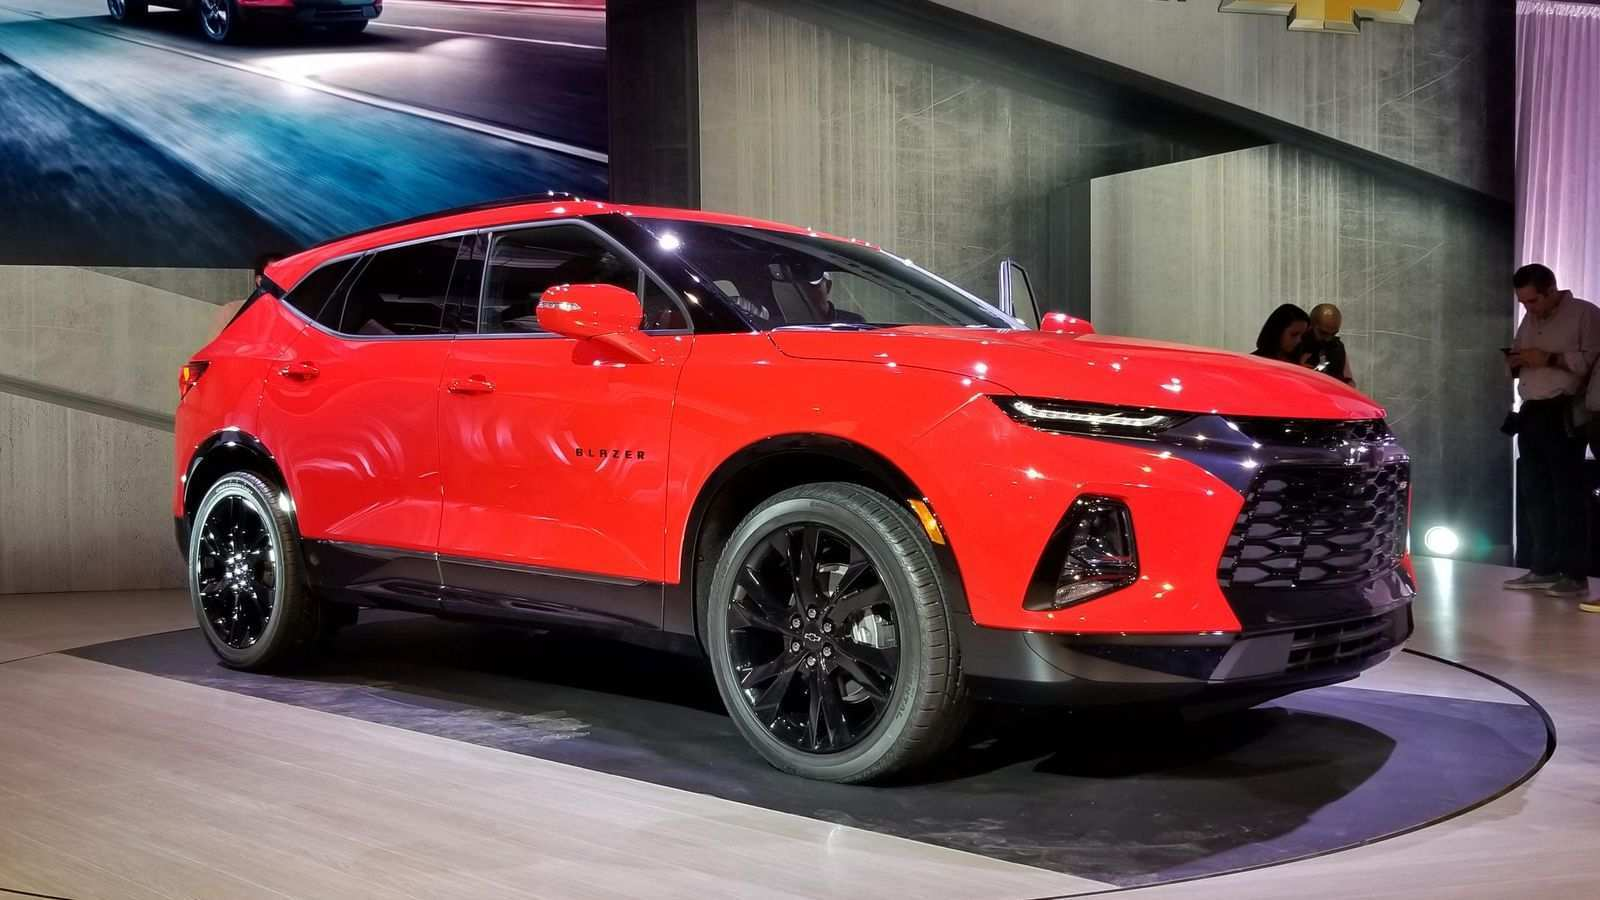 86 All New Chevrolet Blazer 2020 Specs Picture